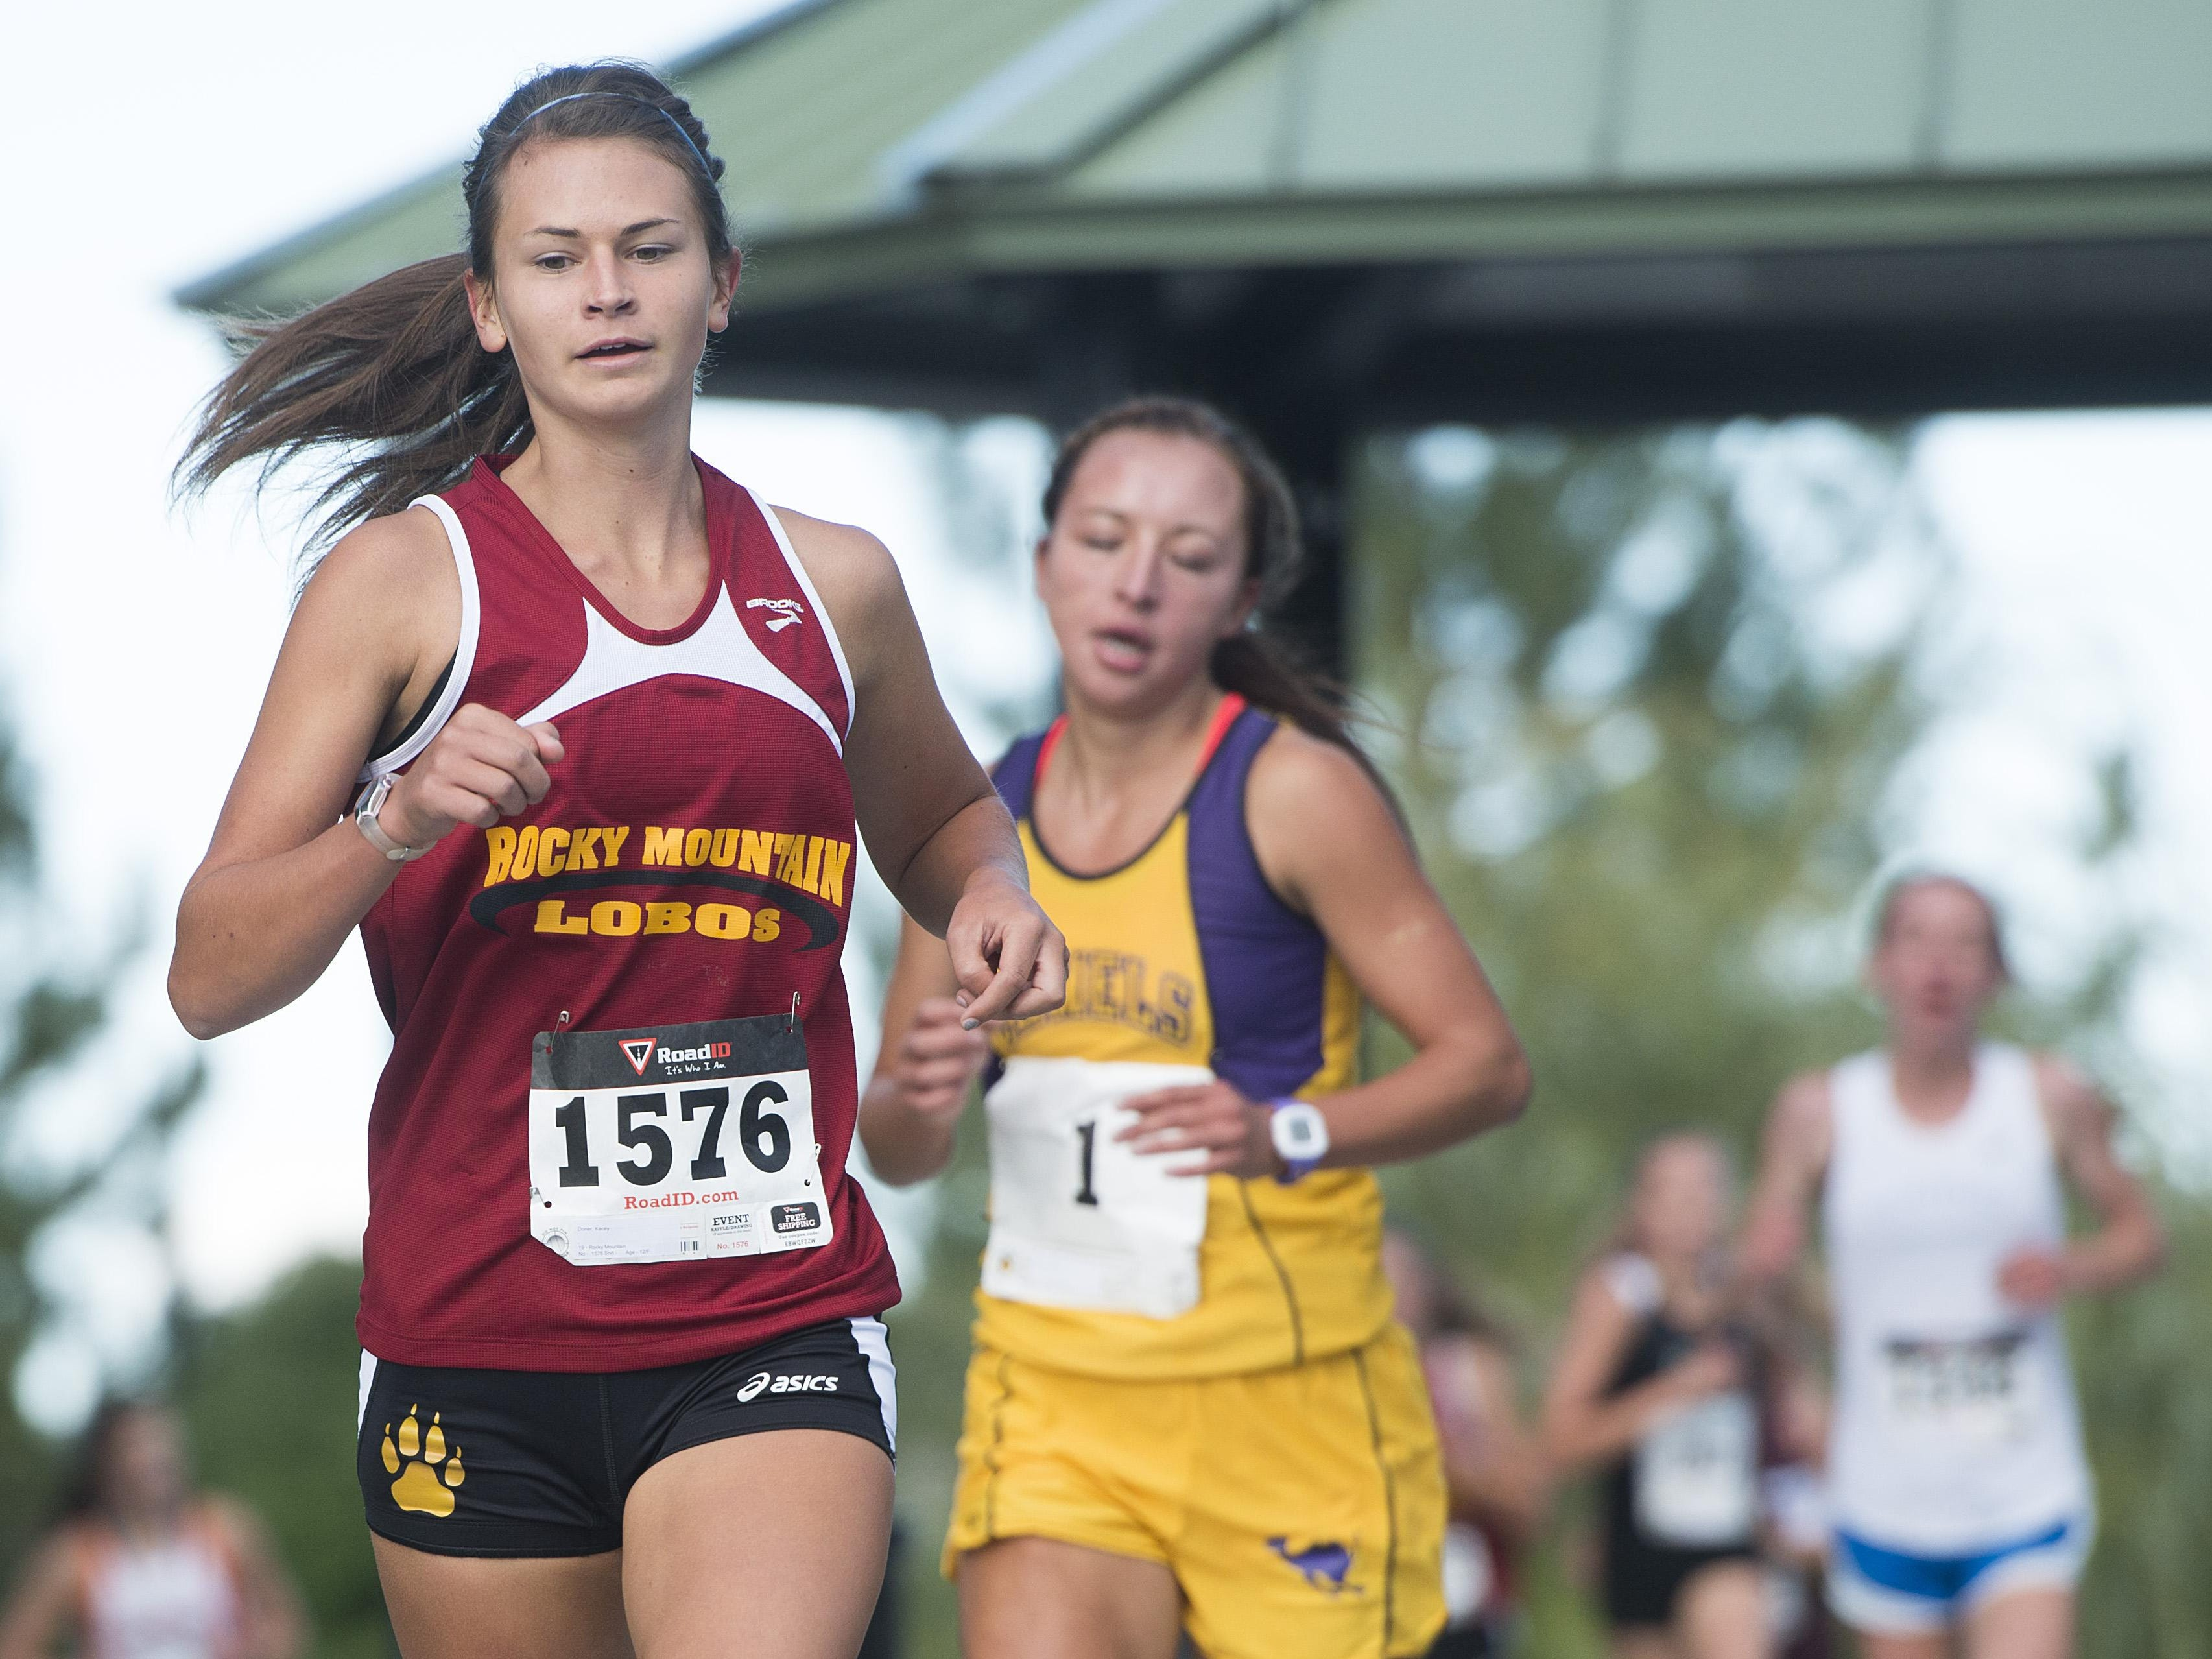 Rocky Mountain High School cross country runner Kacey Doner qualified for Saturday's state meet after missing out last season due to injury.